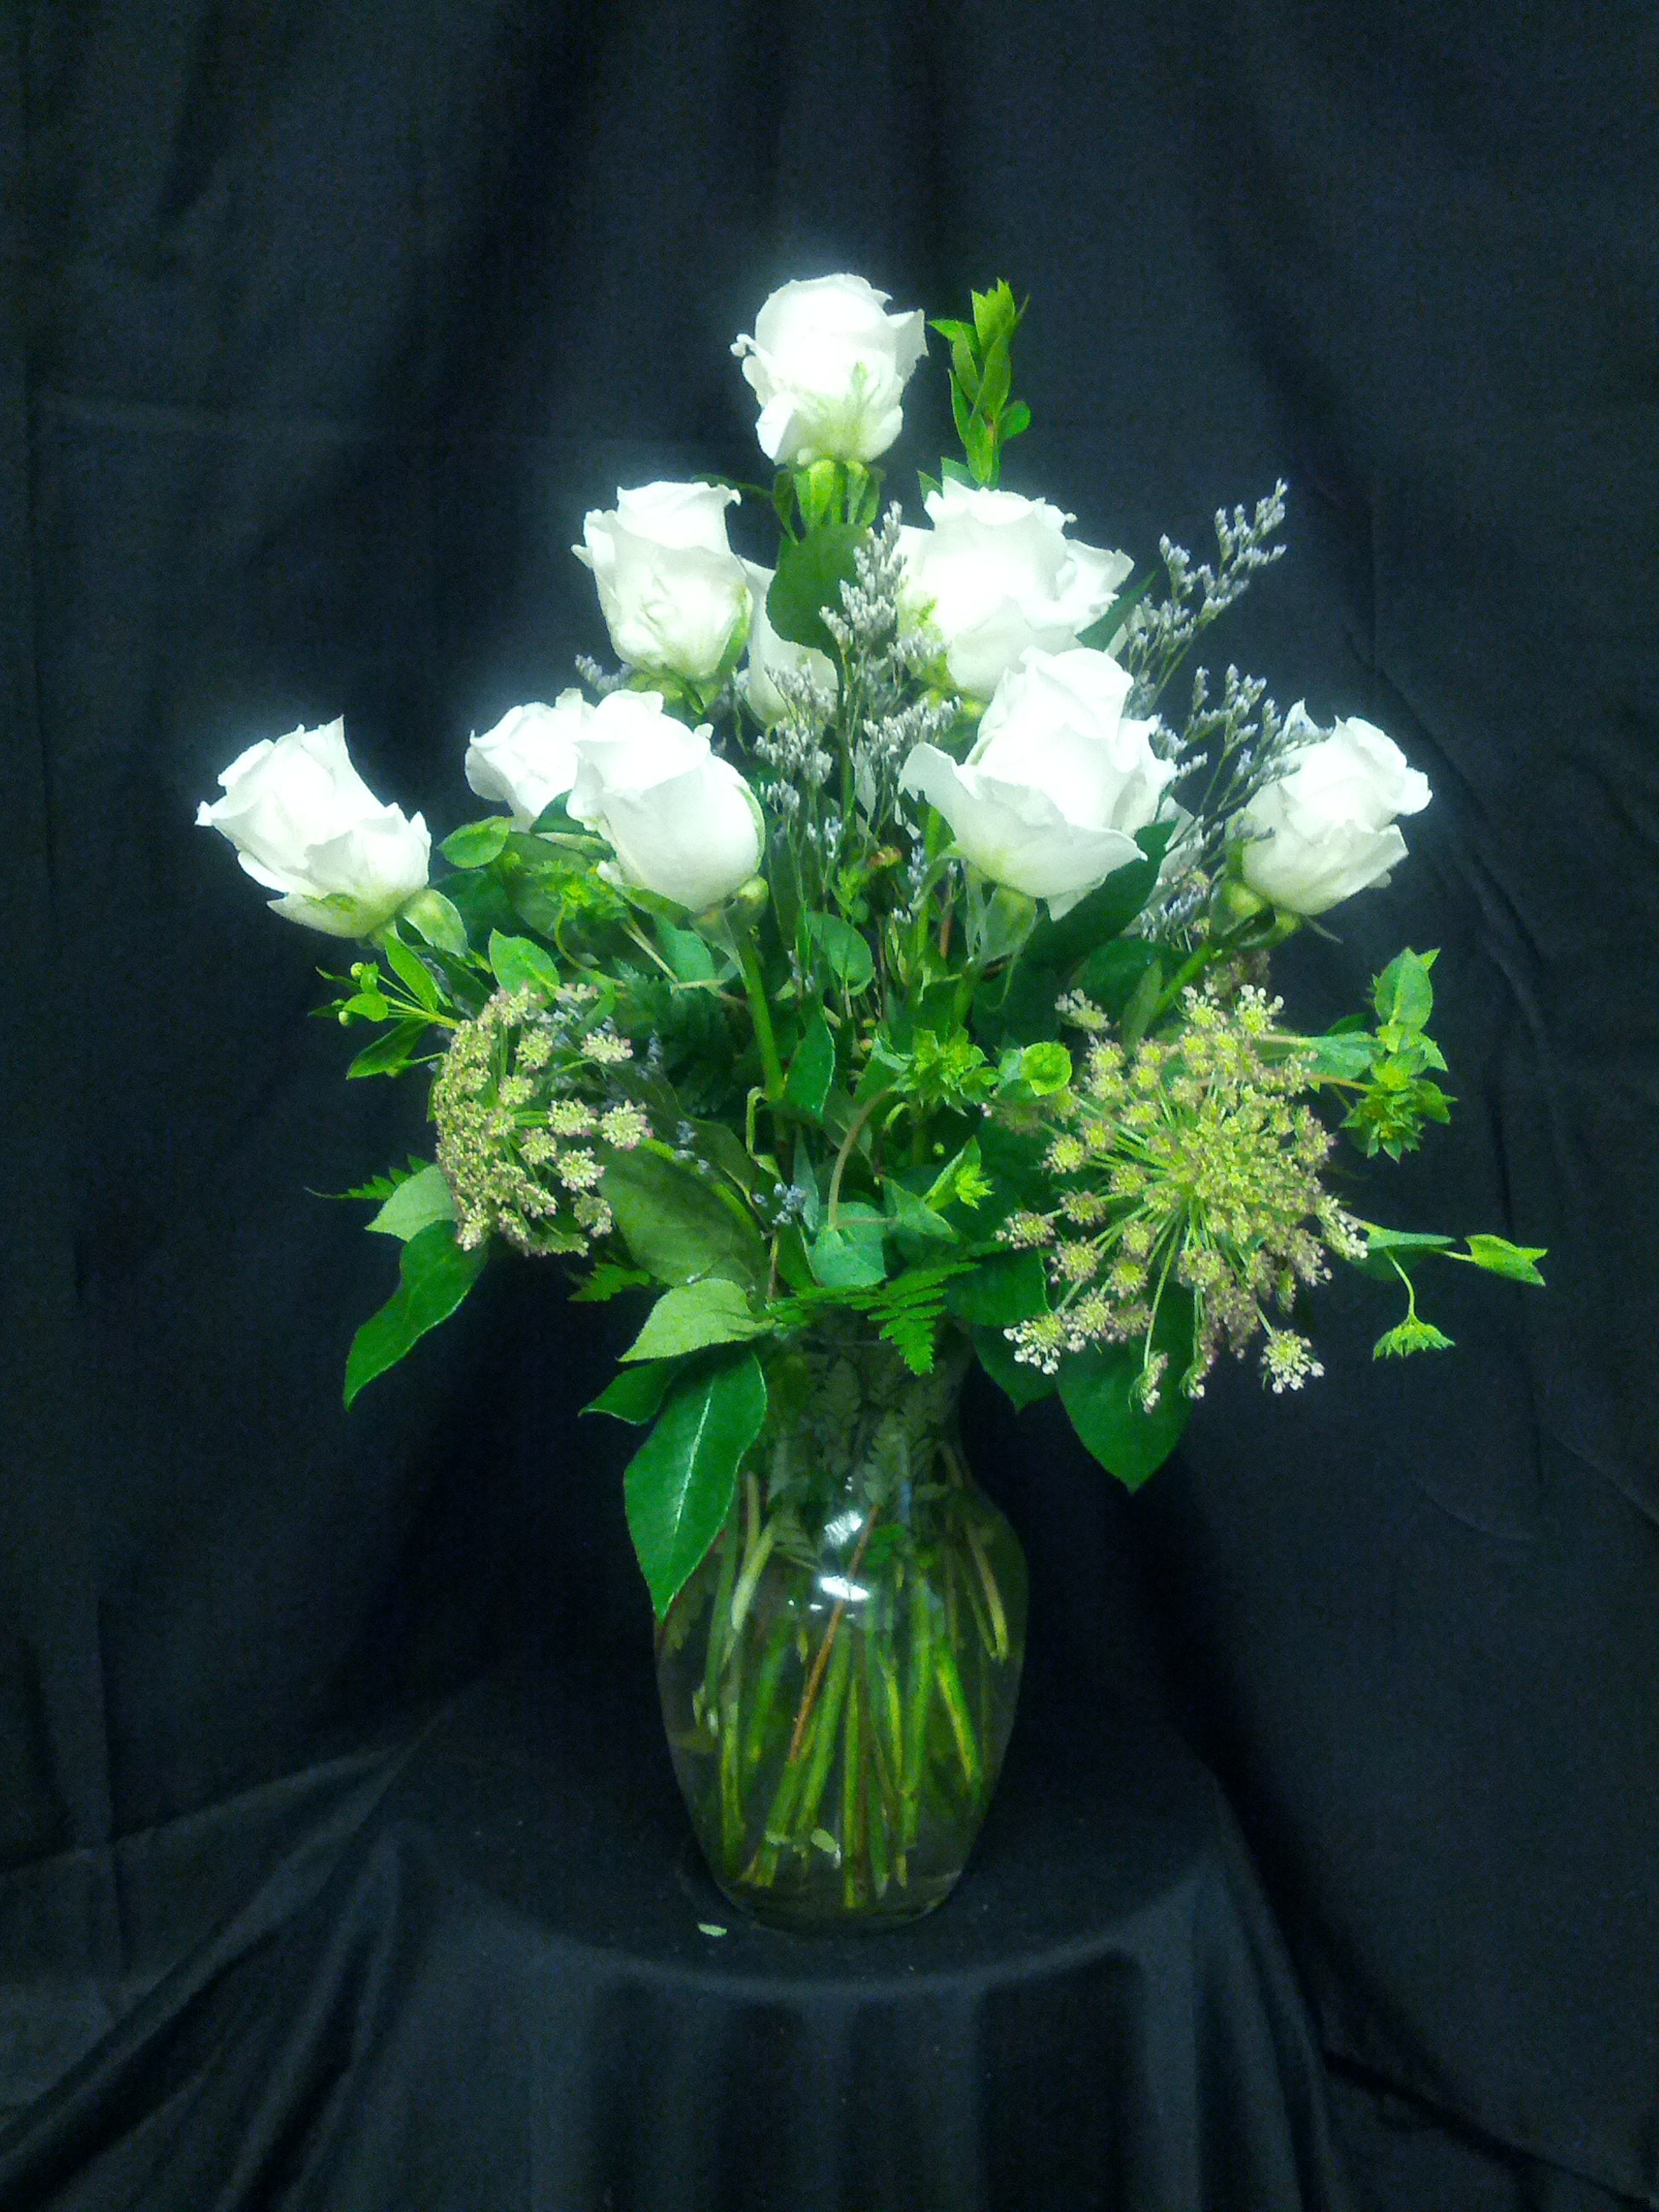 6 inch bud vase of silver bud vases photos gs165h vases floral supply glass 8 x 6 pertaining to silver bud vases photos gs165h vases floral supply glass 8 x 6 silver gold vasei 0d